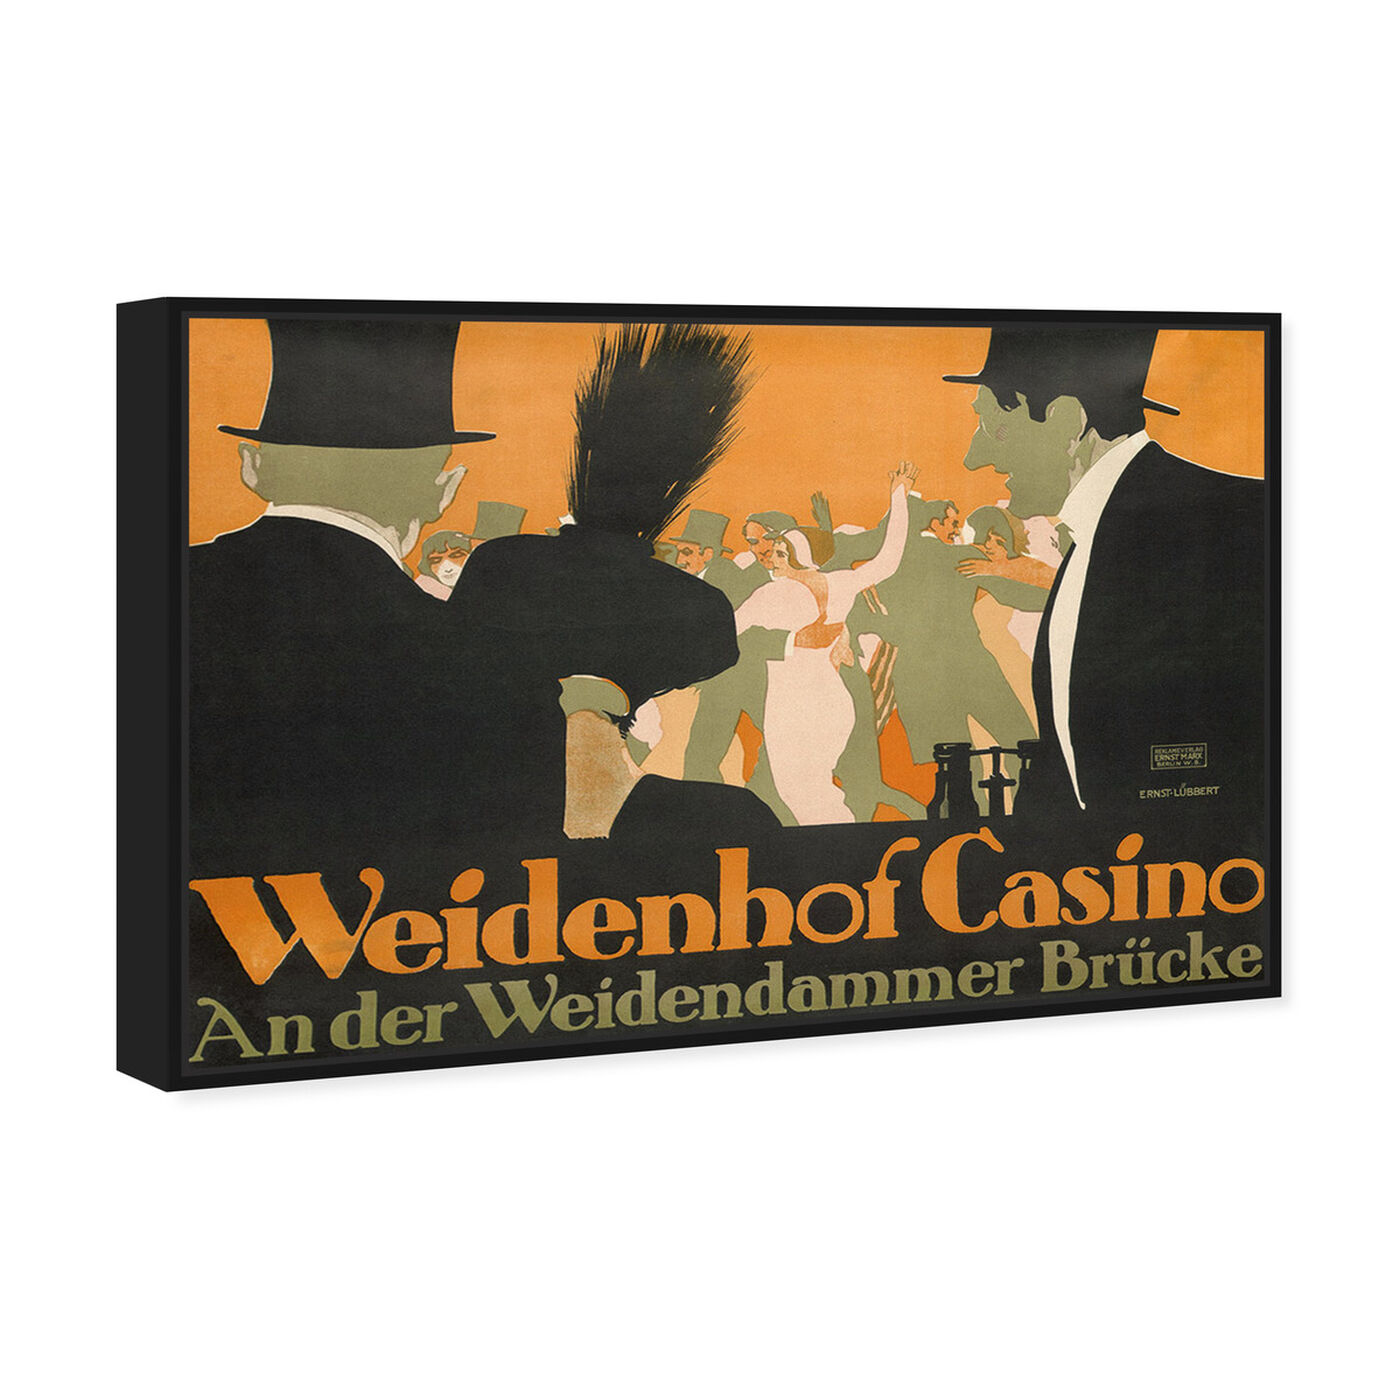 Angled view of Weidenhof Casino featuring advertising and posters art.